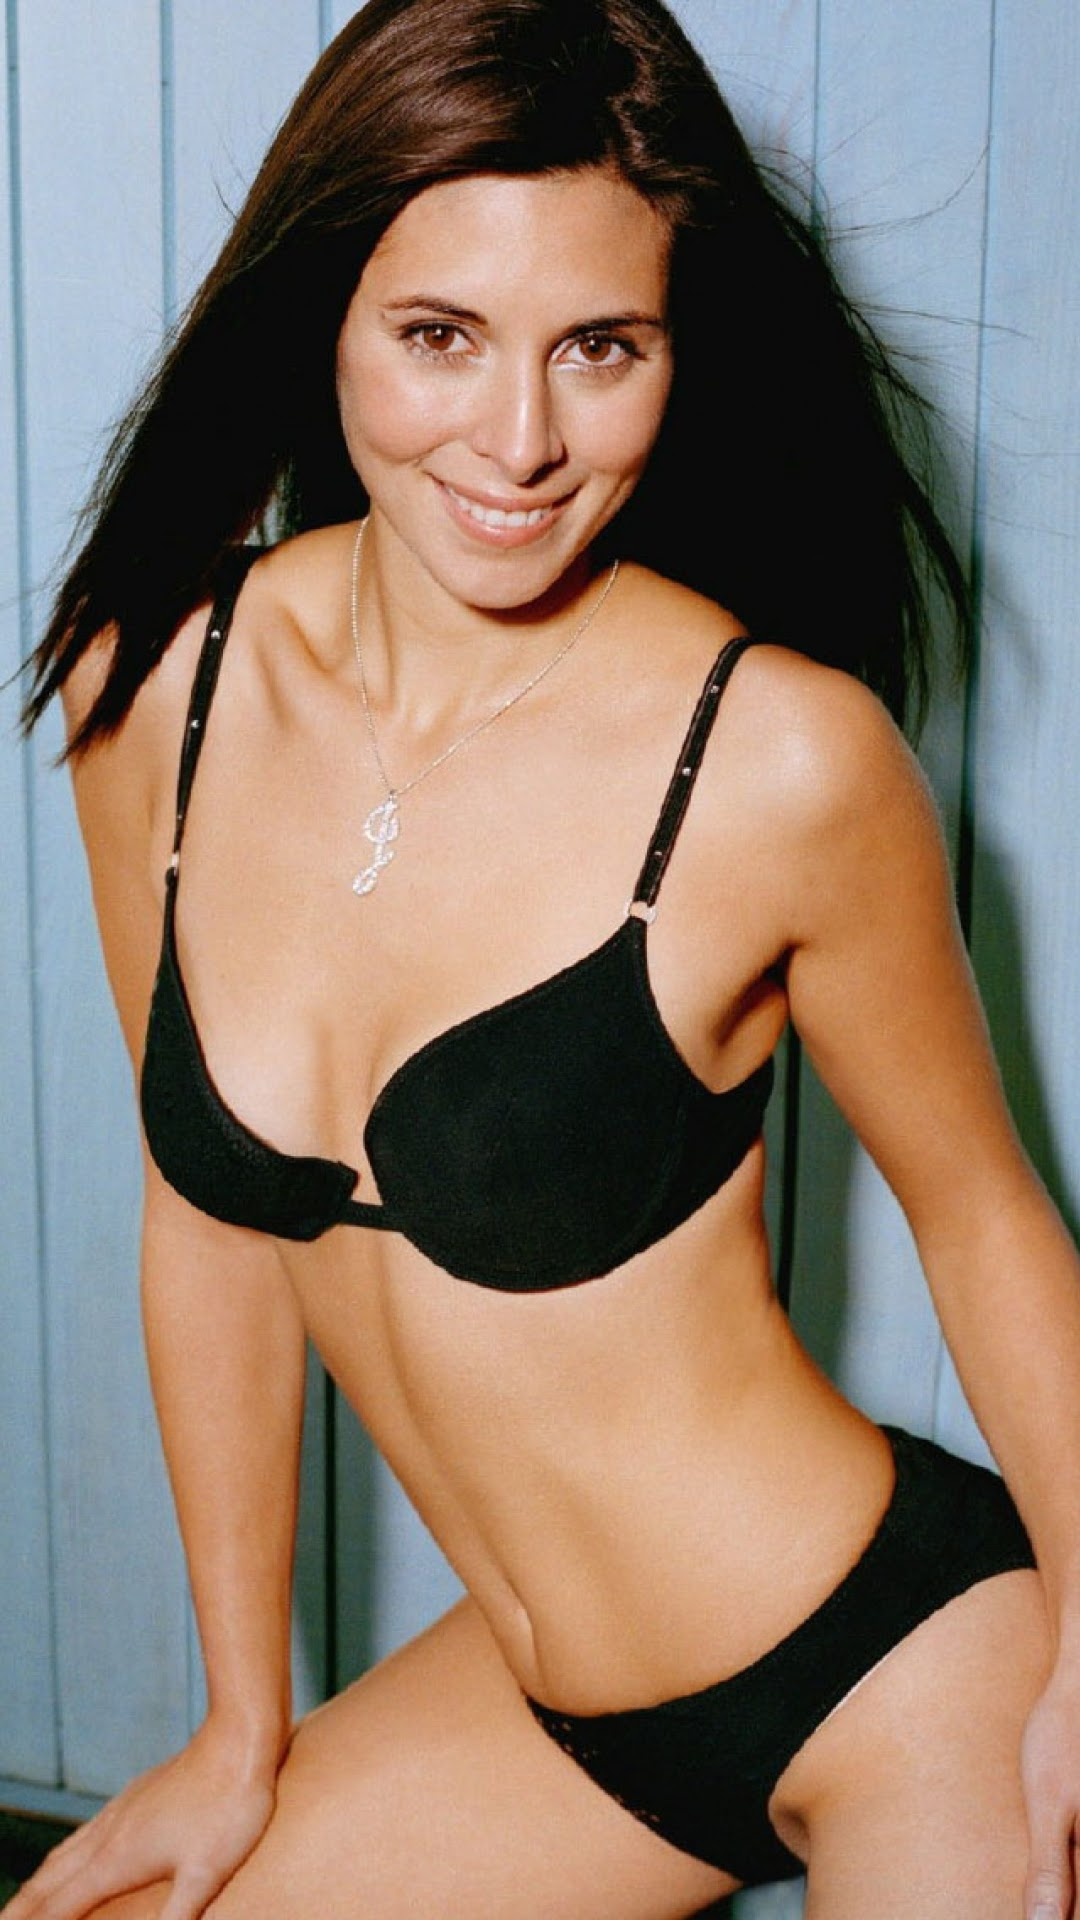 Pity, that Jamie lynn sigler bikini was